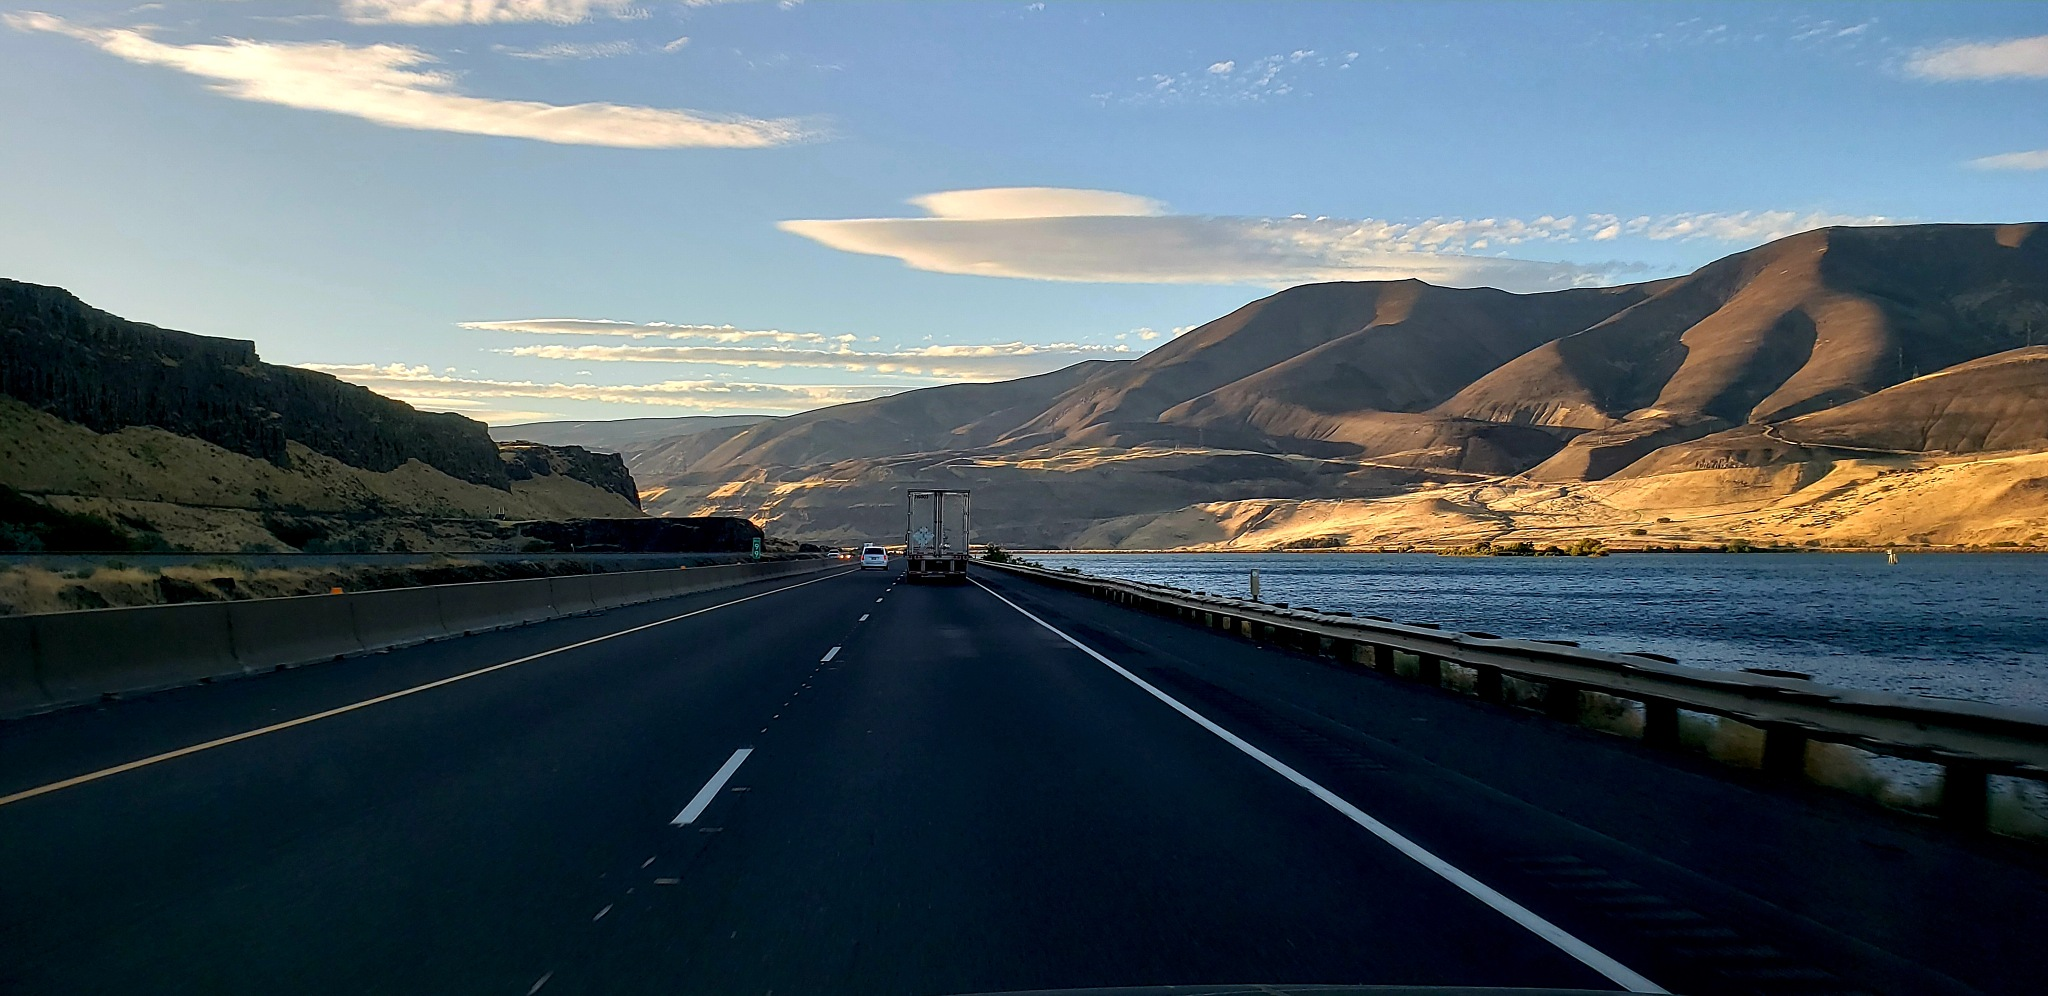 Driving down highway 84 to the dells Oregon beautiful Columbia river gorge by bluerocks1956